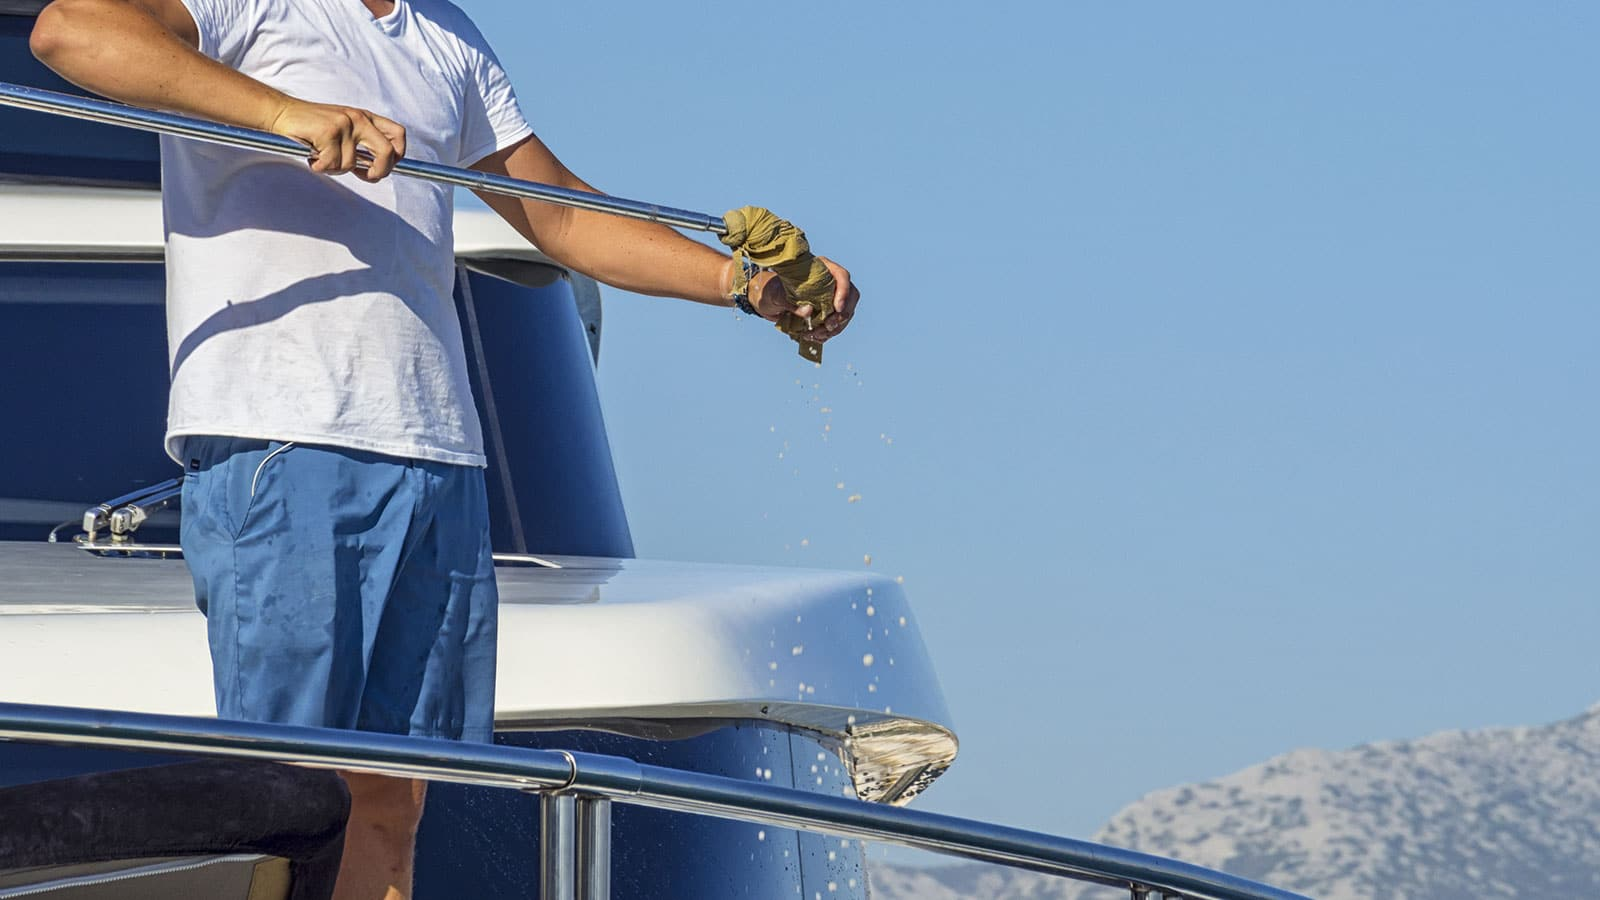 Premium-Boat-Care-&-Maintenance---Seaboard-Surface-Solutions